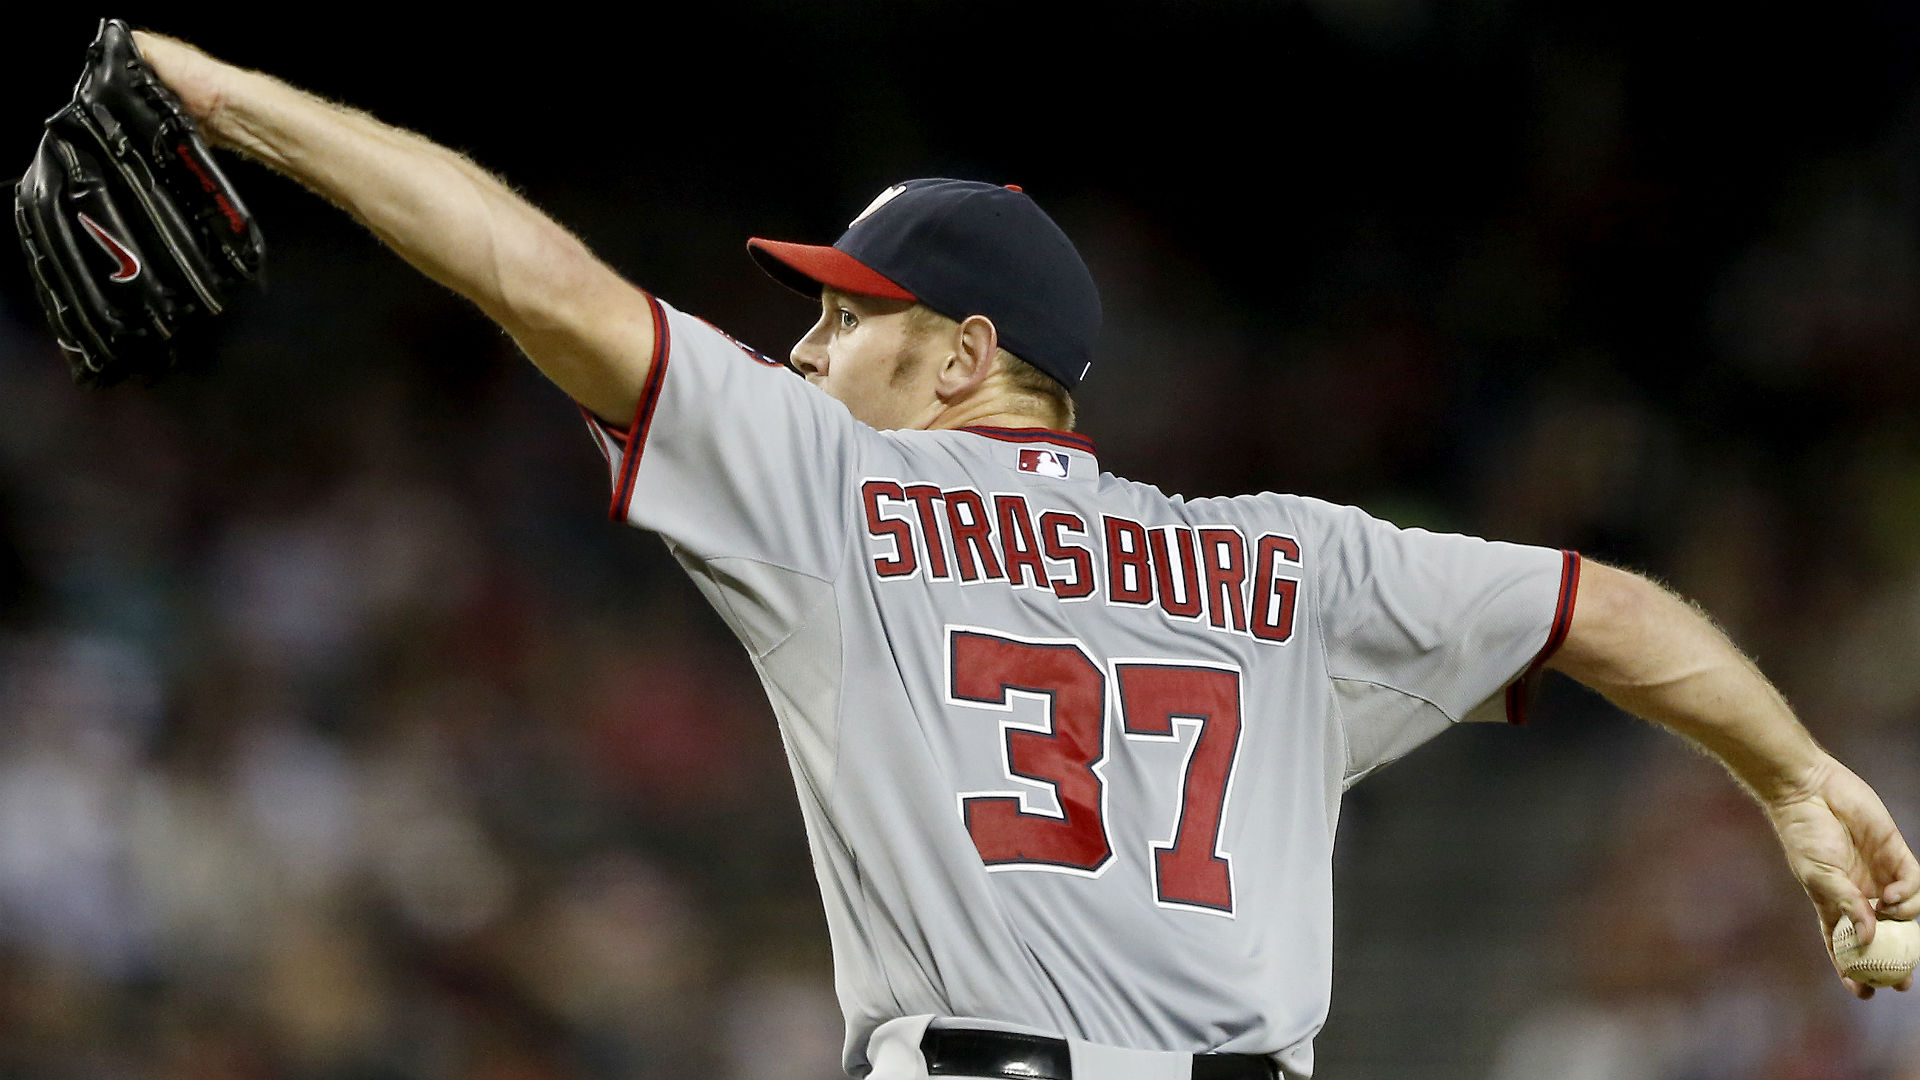 Top 5: Hardest-throwing starters in baseball